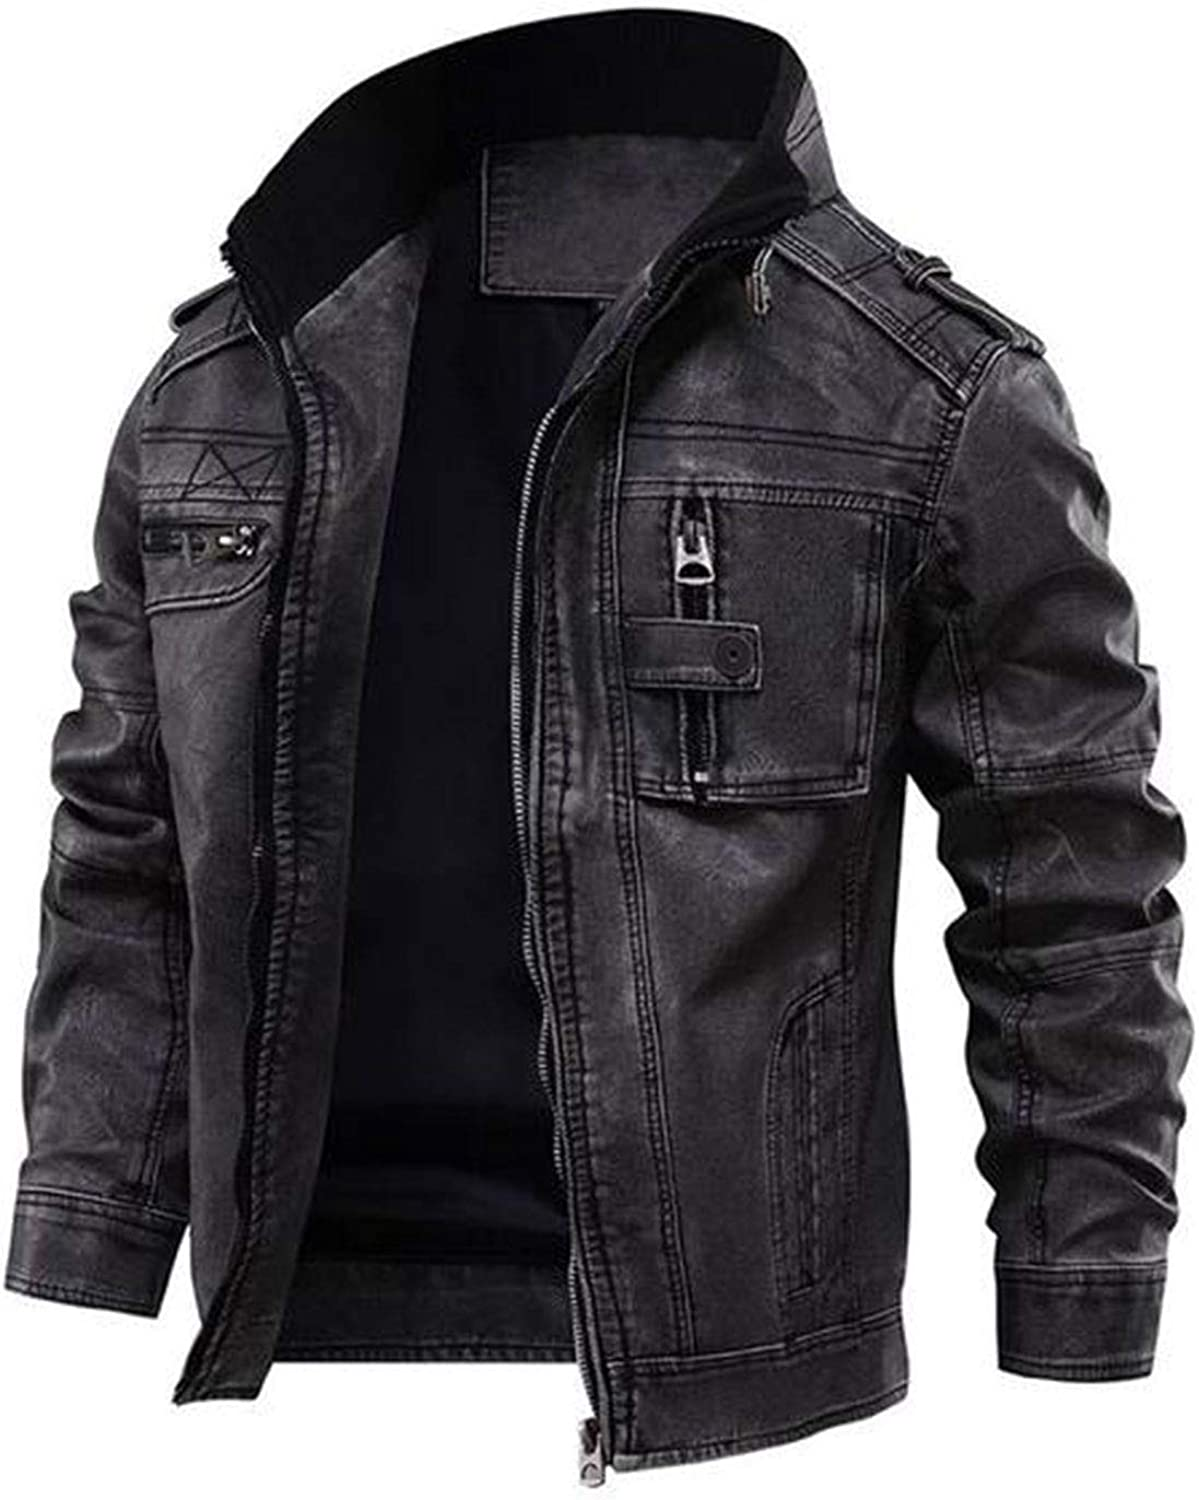 Men's Motorcycle Brando Style Biker Real Leather Jacket - Distressed Leather Cafe Racer Jackets